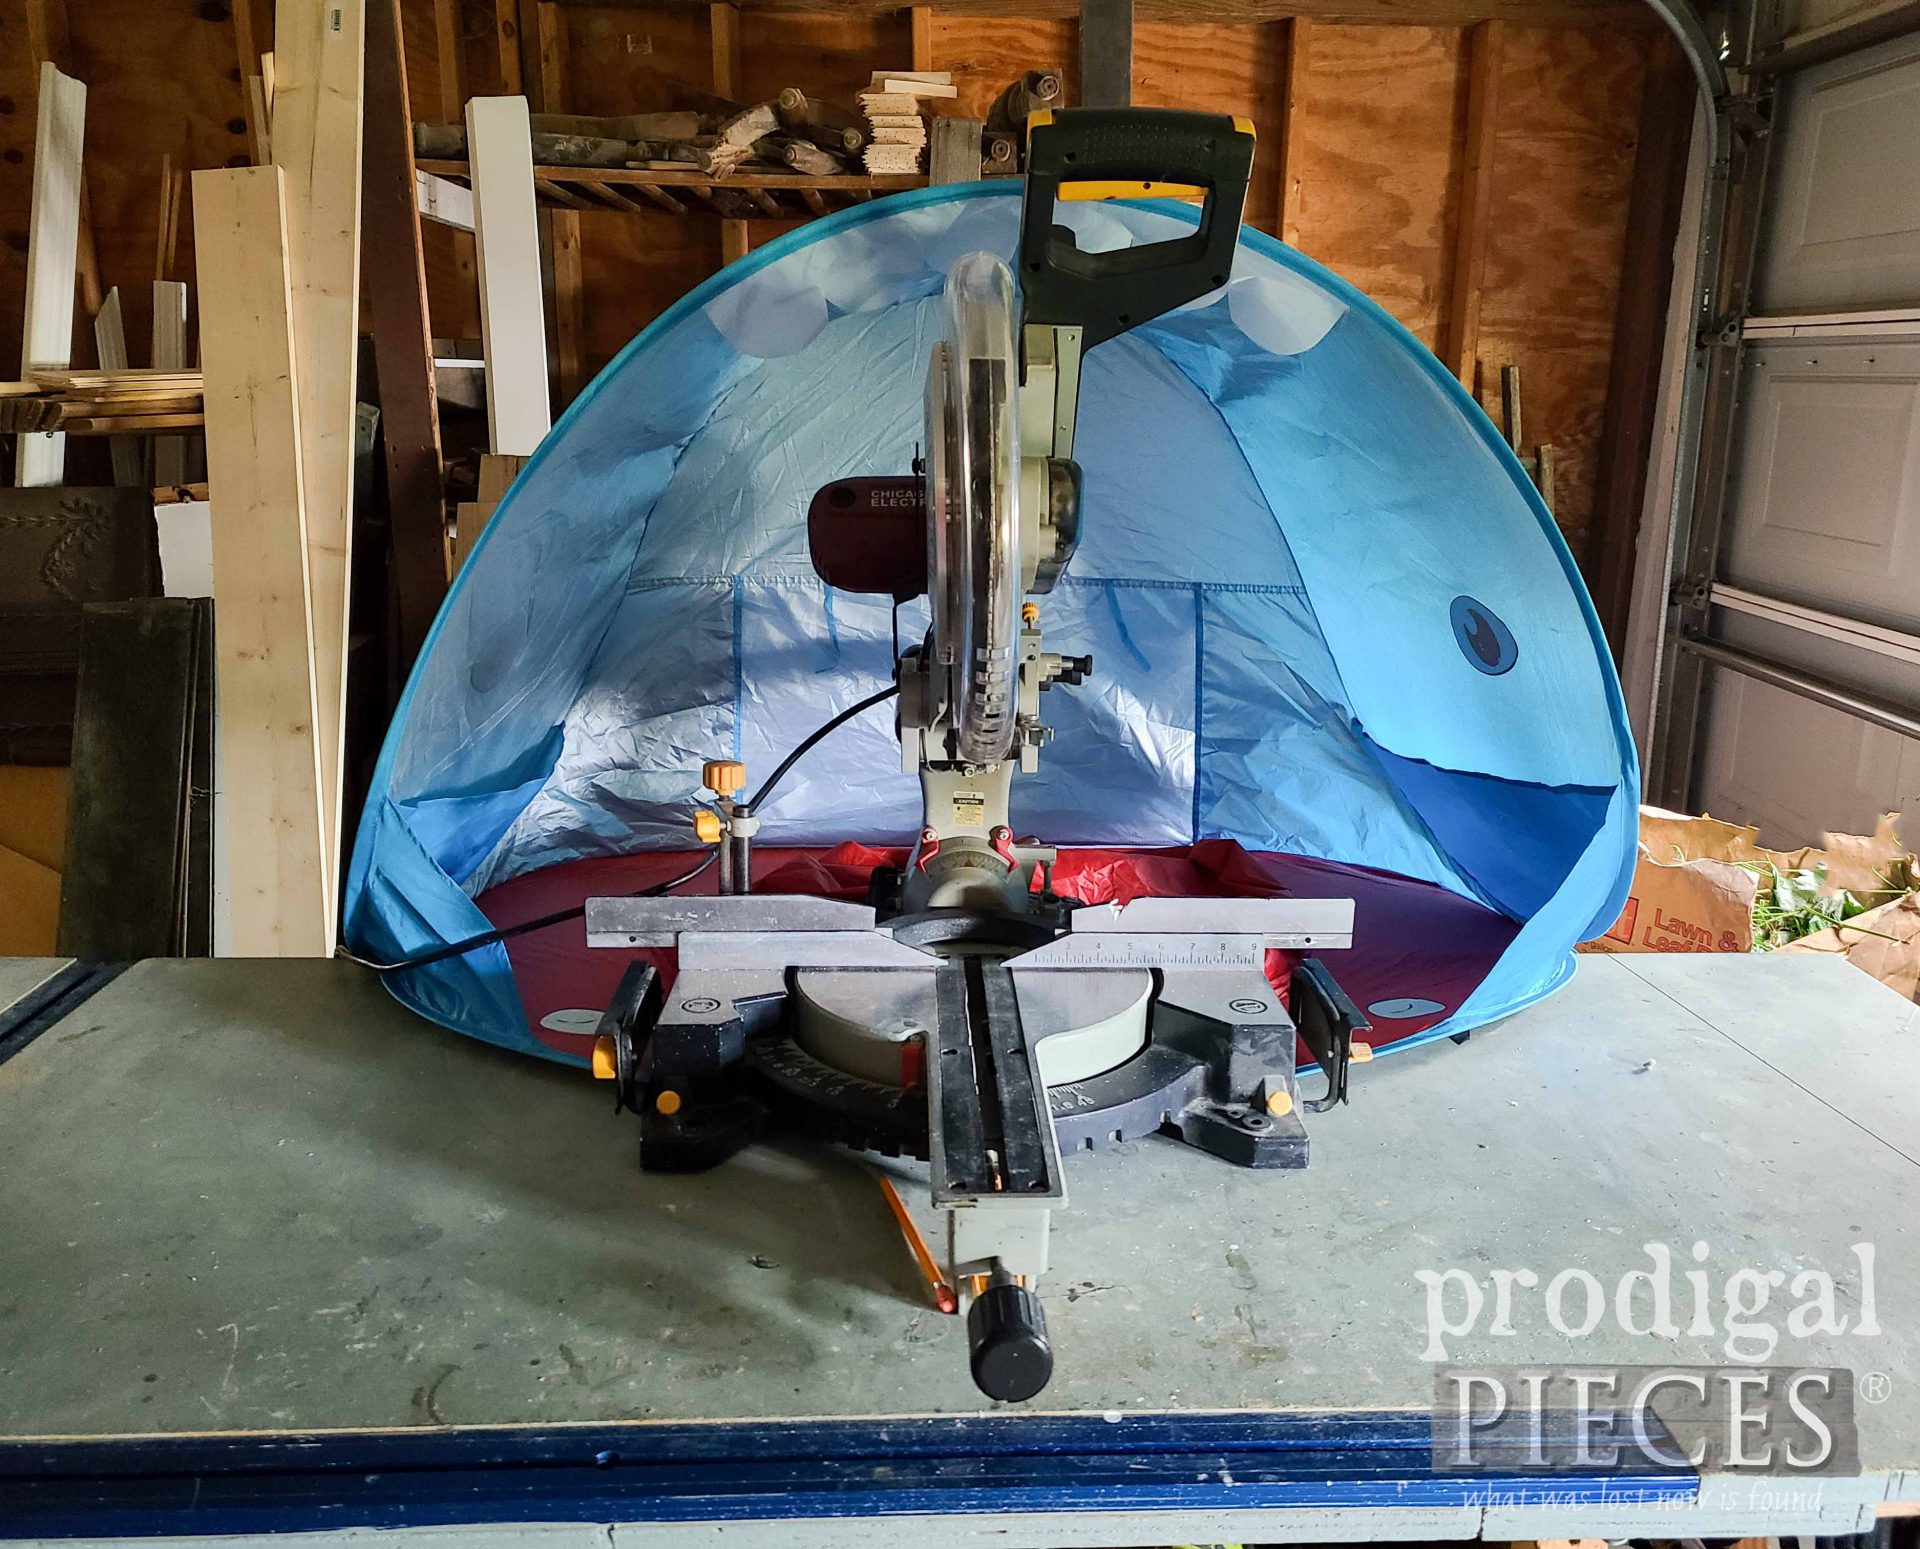 Whalte Baby Sun Tent Used for Miter Saw Hood   by Prodigal Pieces   prodigalpieces.com